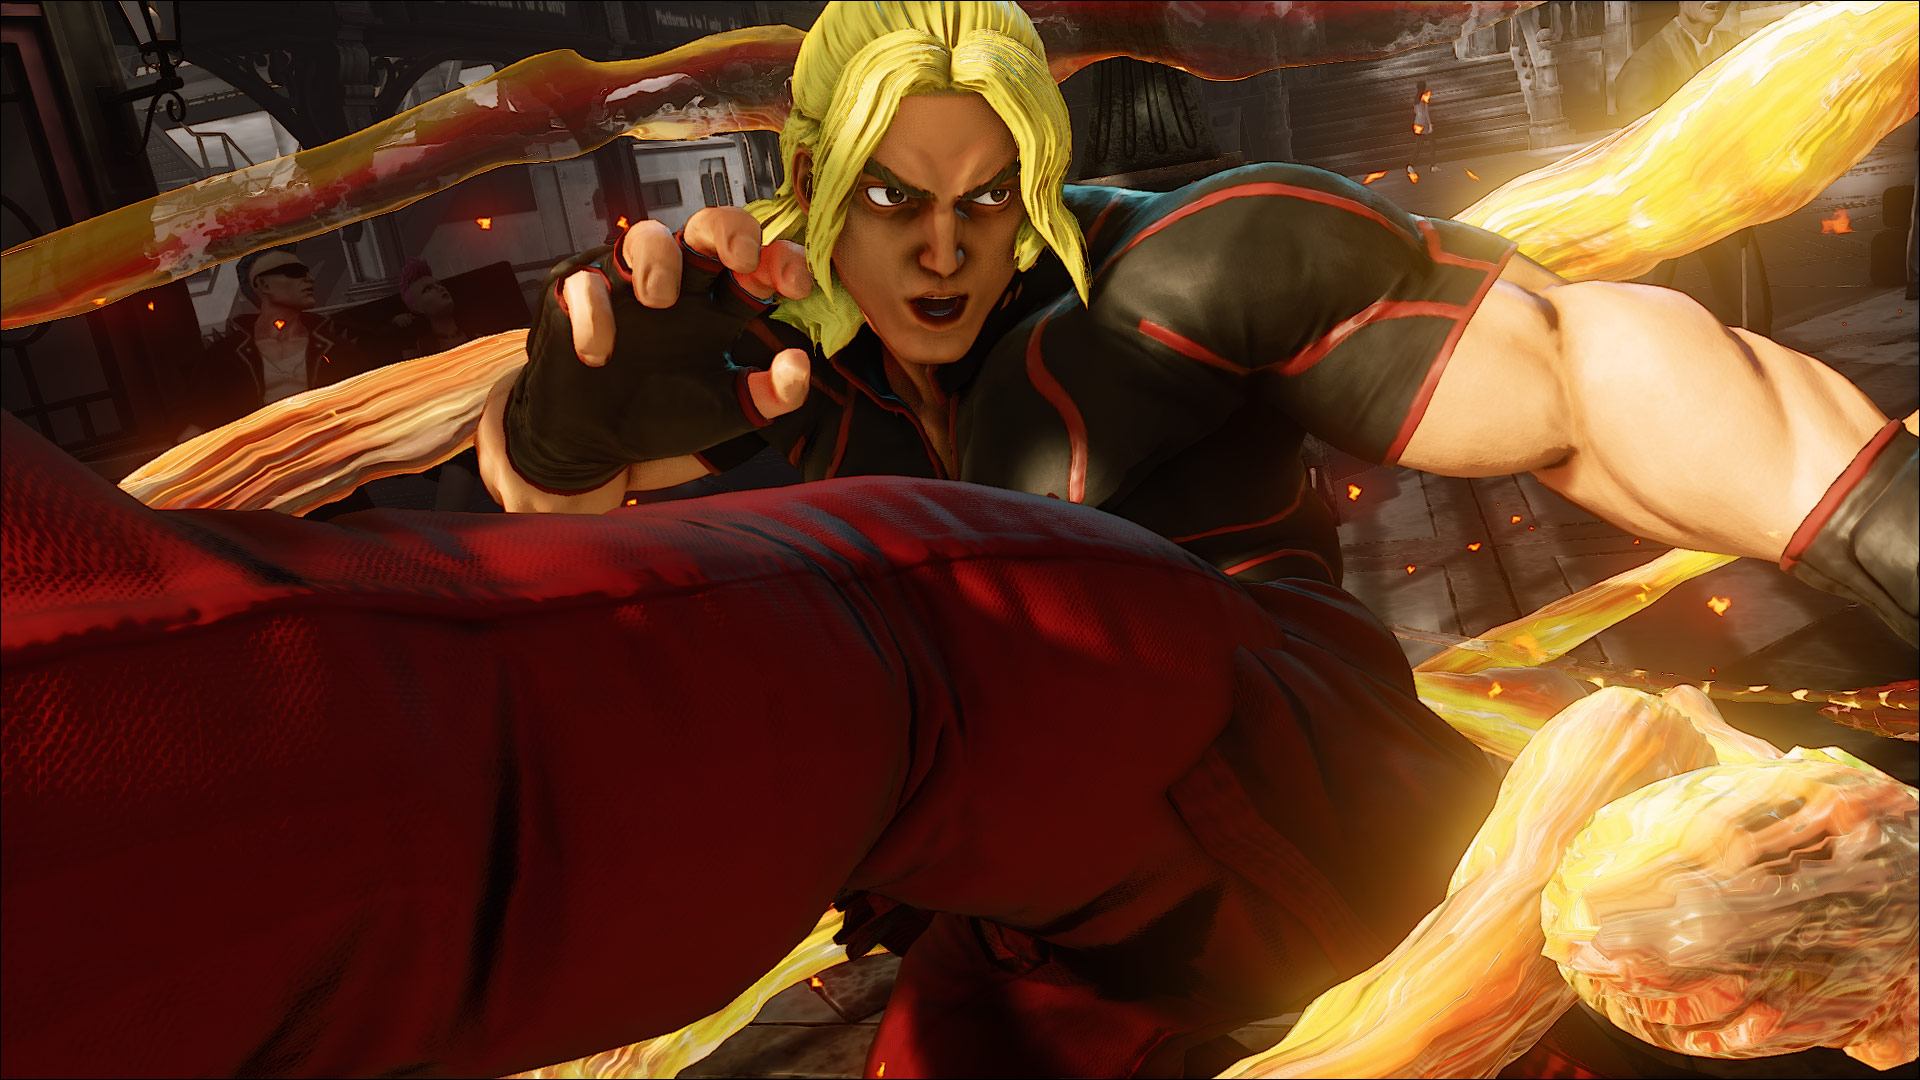 Ken Street Fighter 5 SDCC 2015 reveal 1 out of 13 image gallery